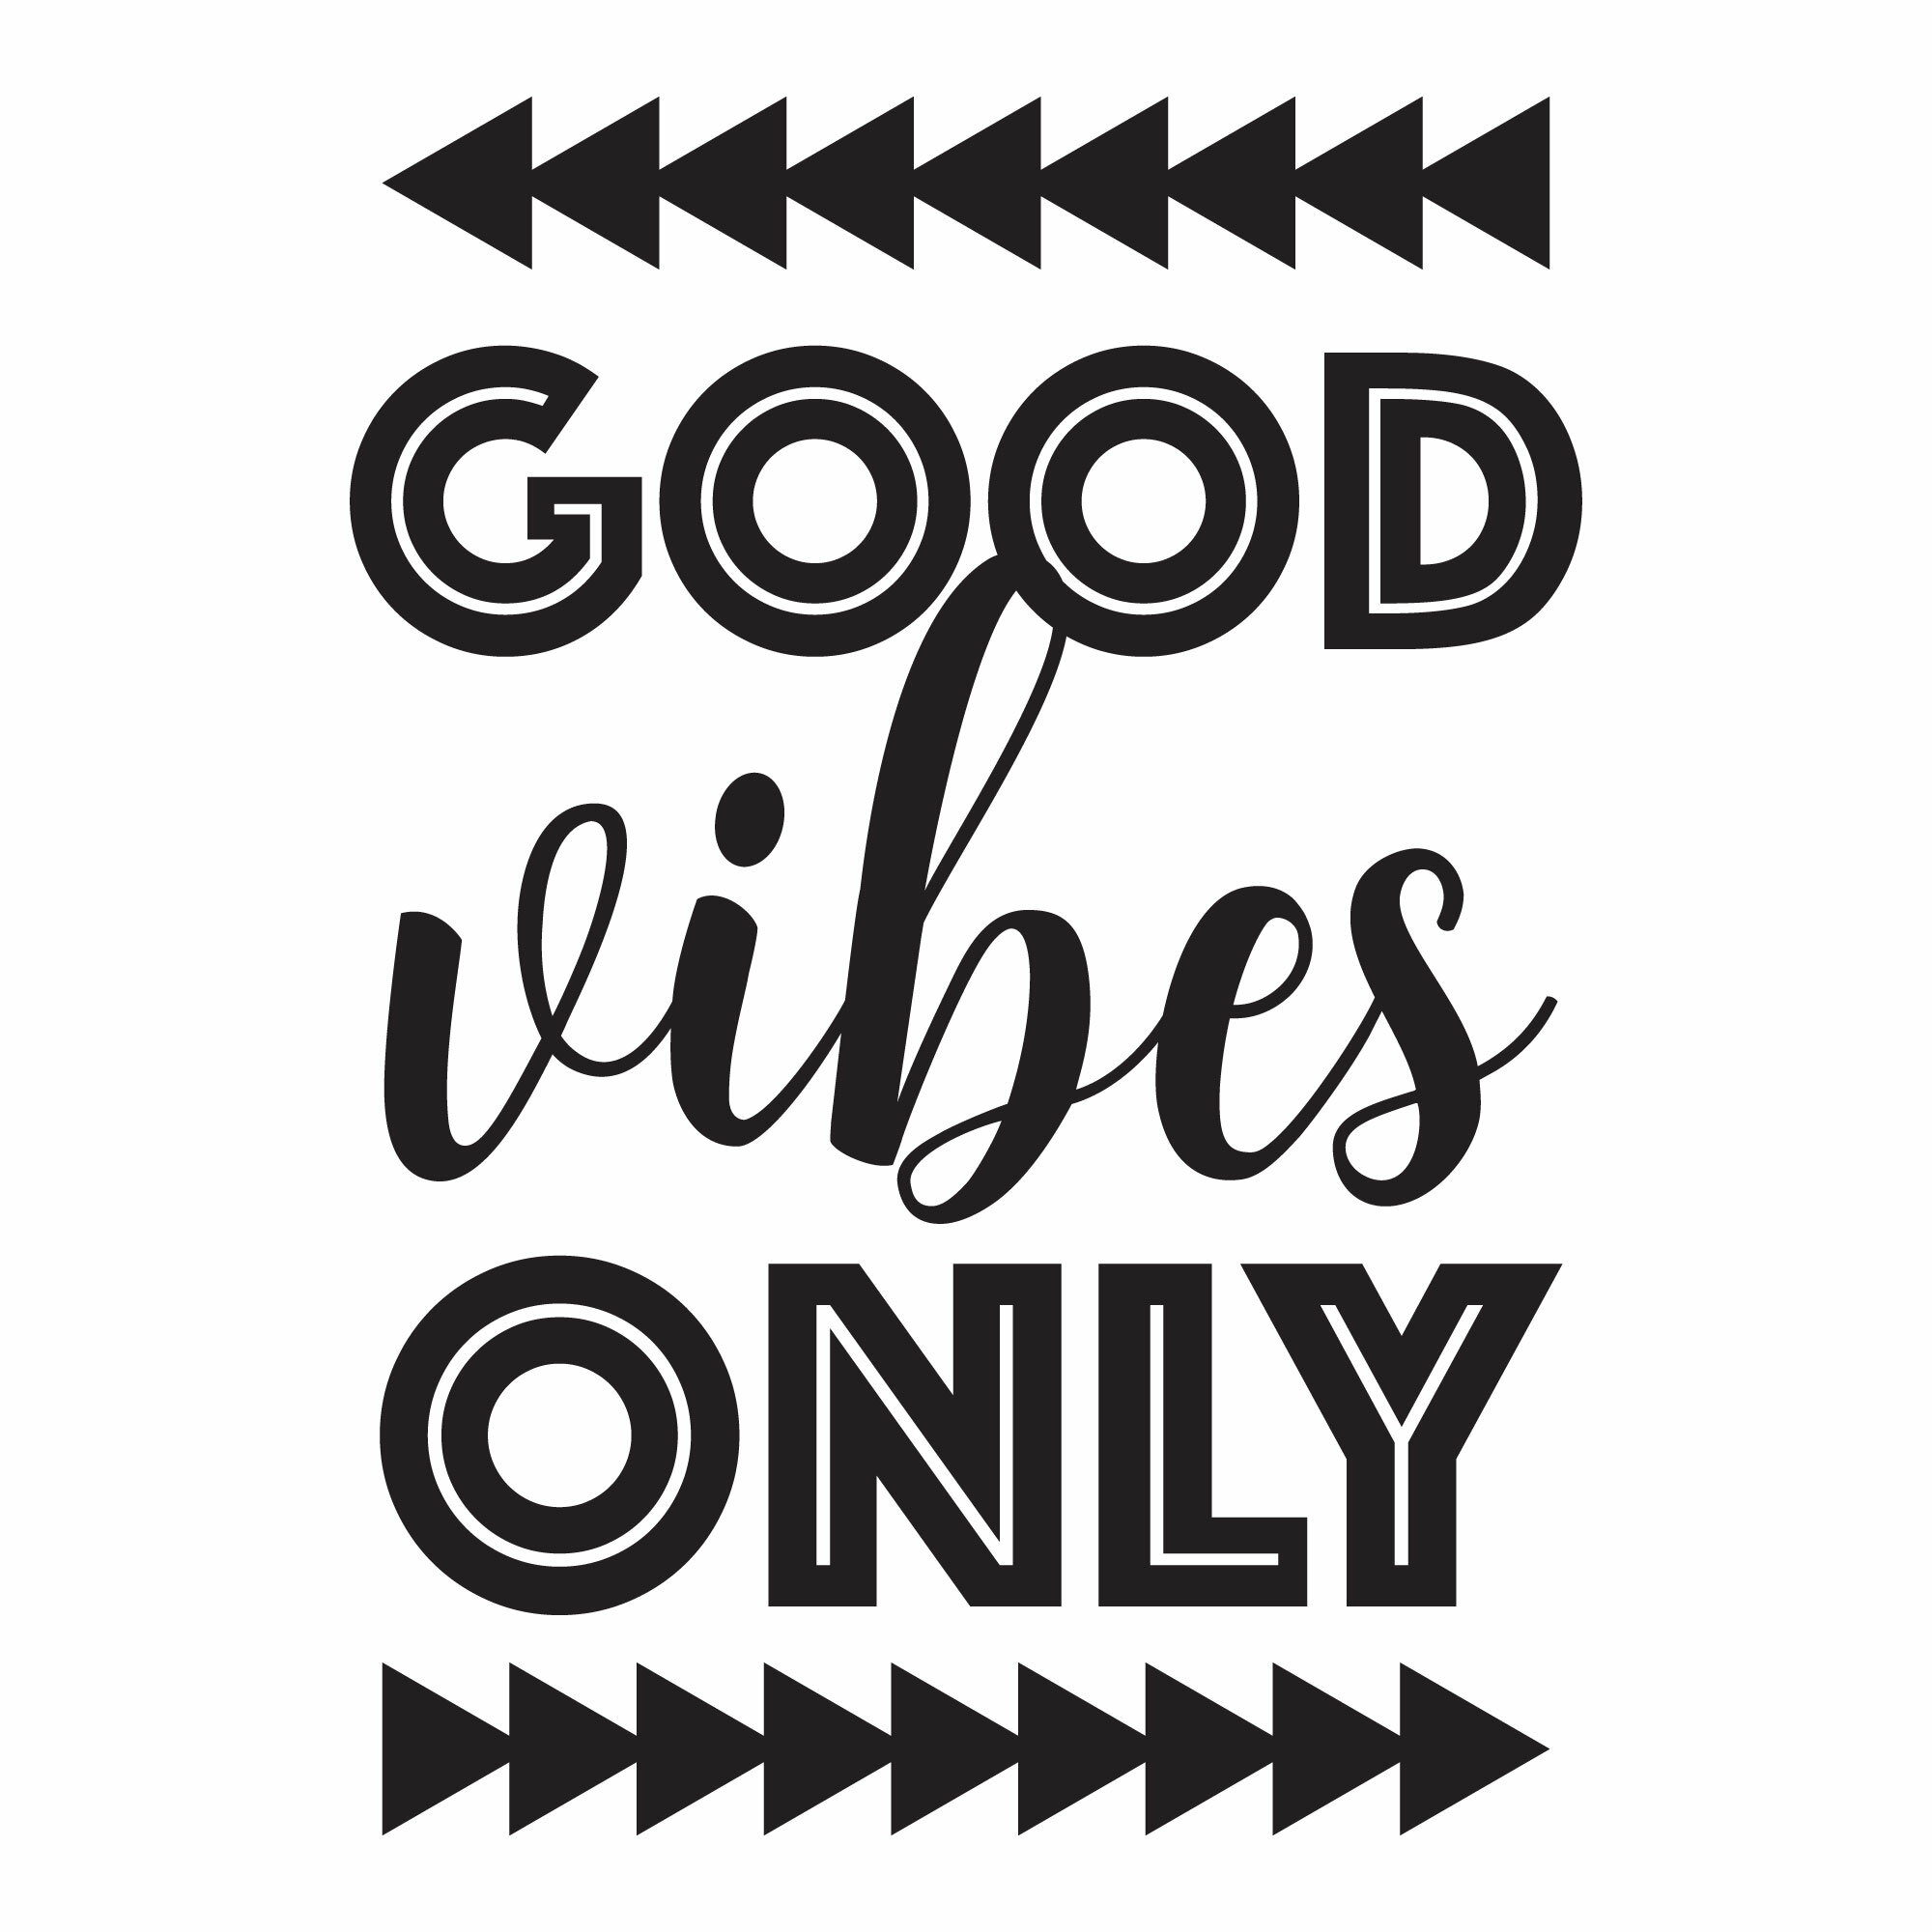 Good Vibes Quotes   Belvedere Designs Llc Good Vibes Only Trendy Dorm Wall Quotes Decal